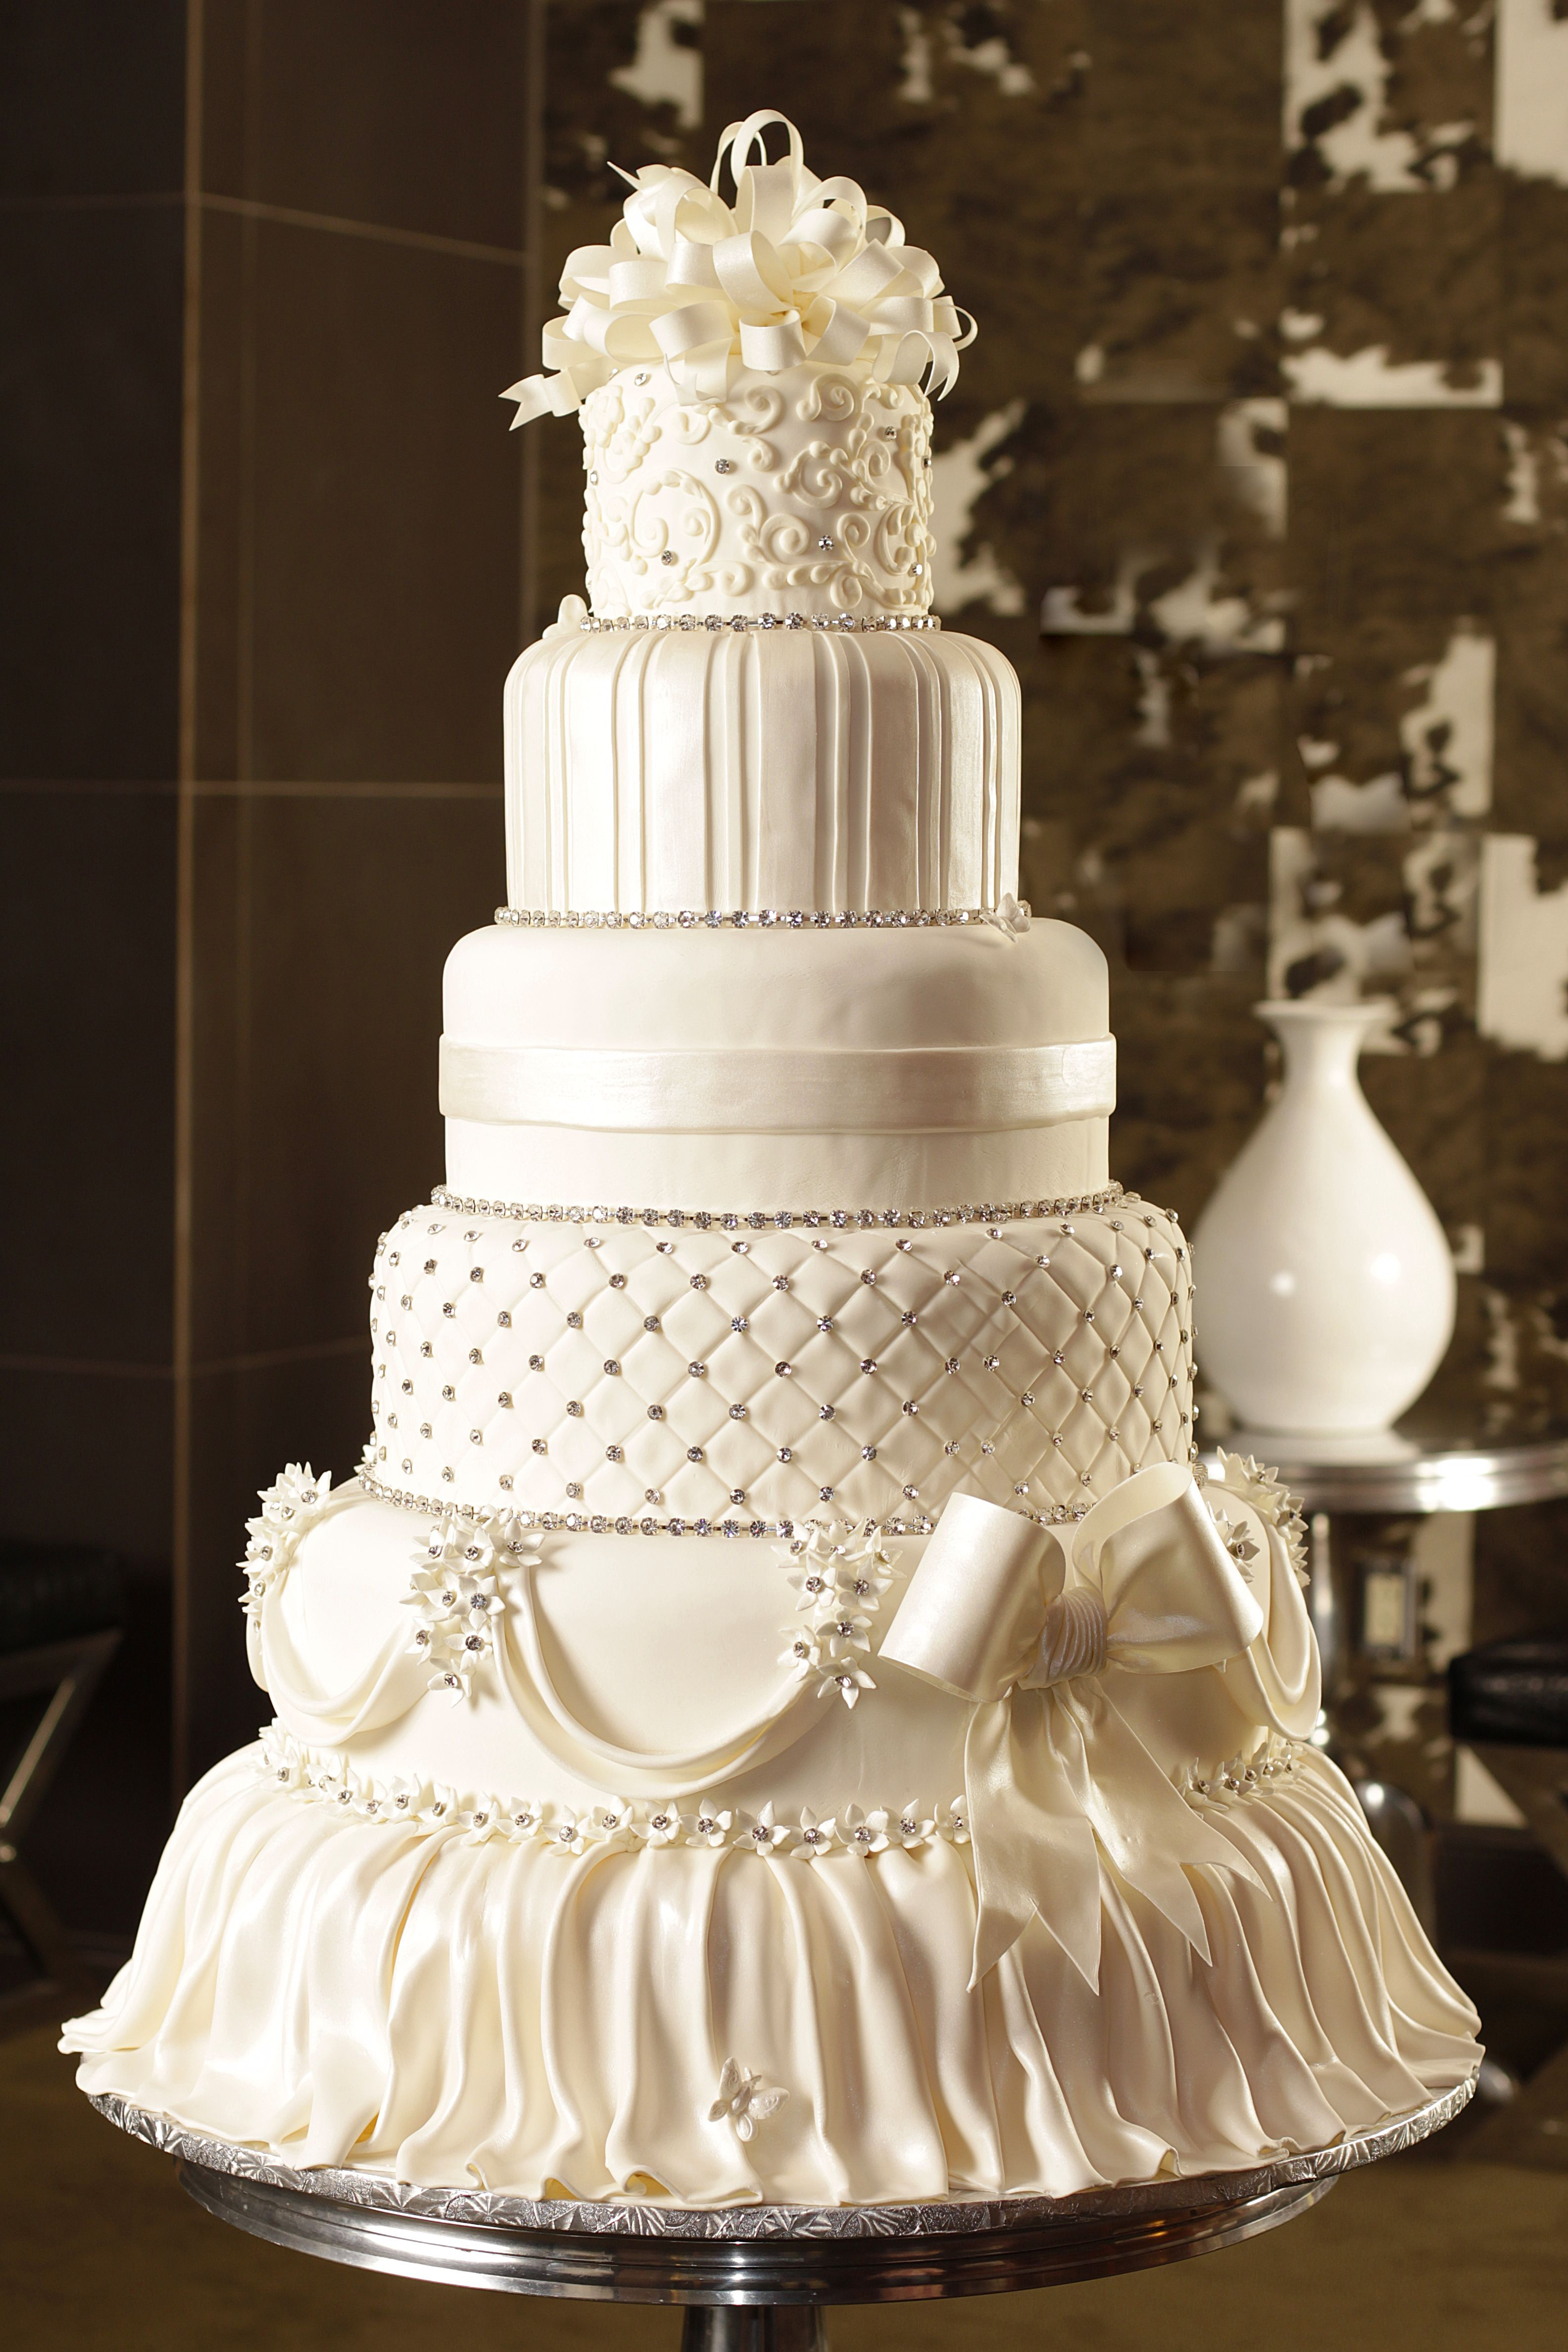 Cake boss wedding cakes recipes different trend on cake design ideas cake boss wedding cakes recipes different trend on cake design ideas junglespirit Gallery